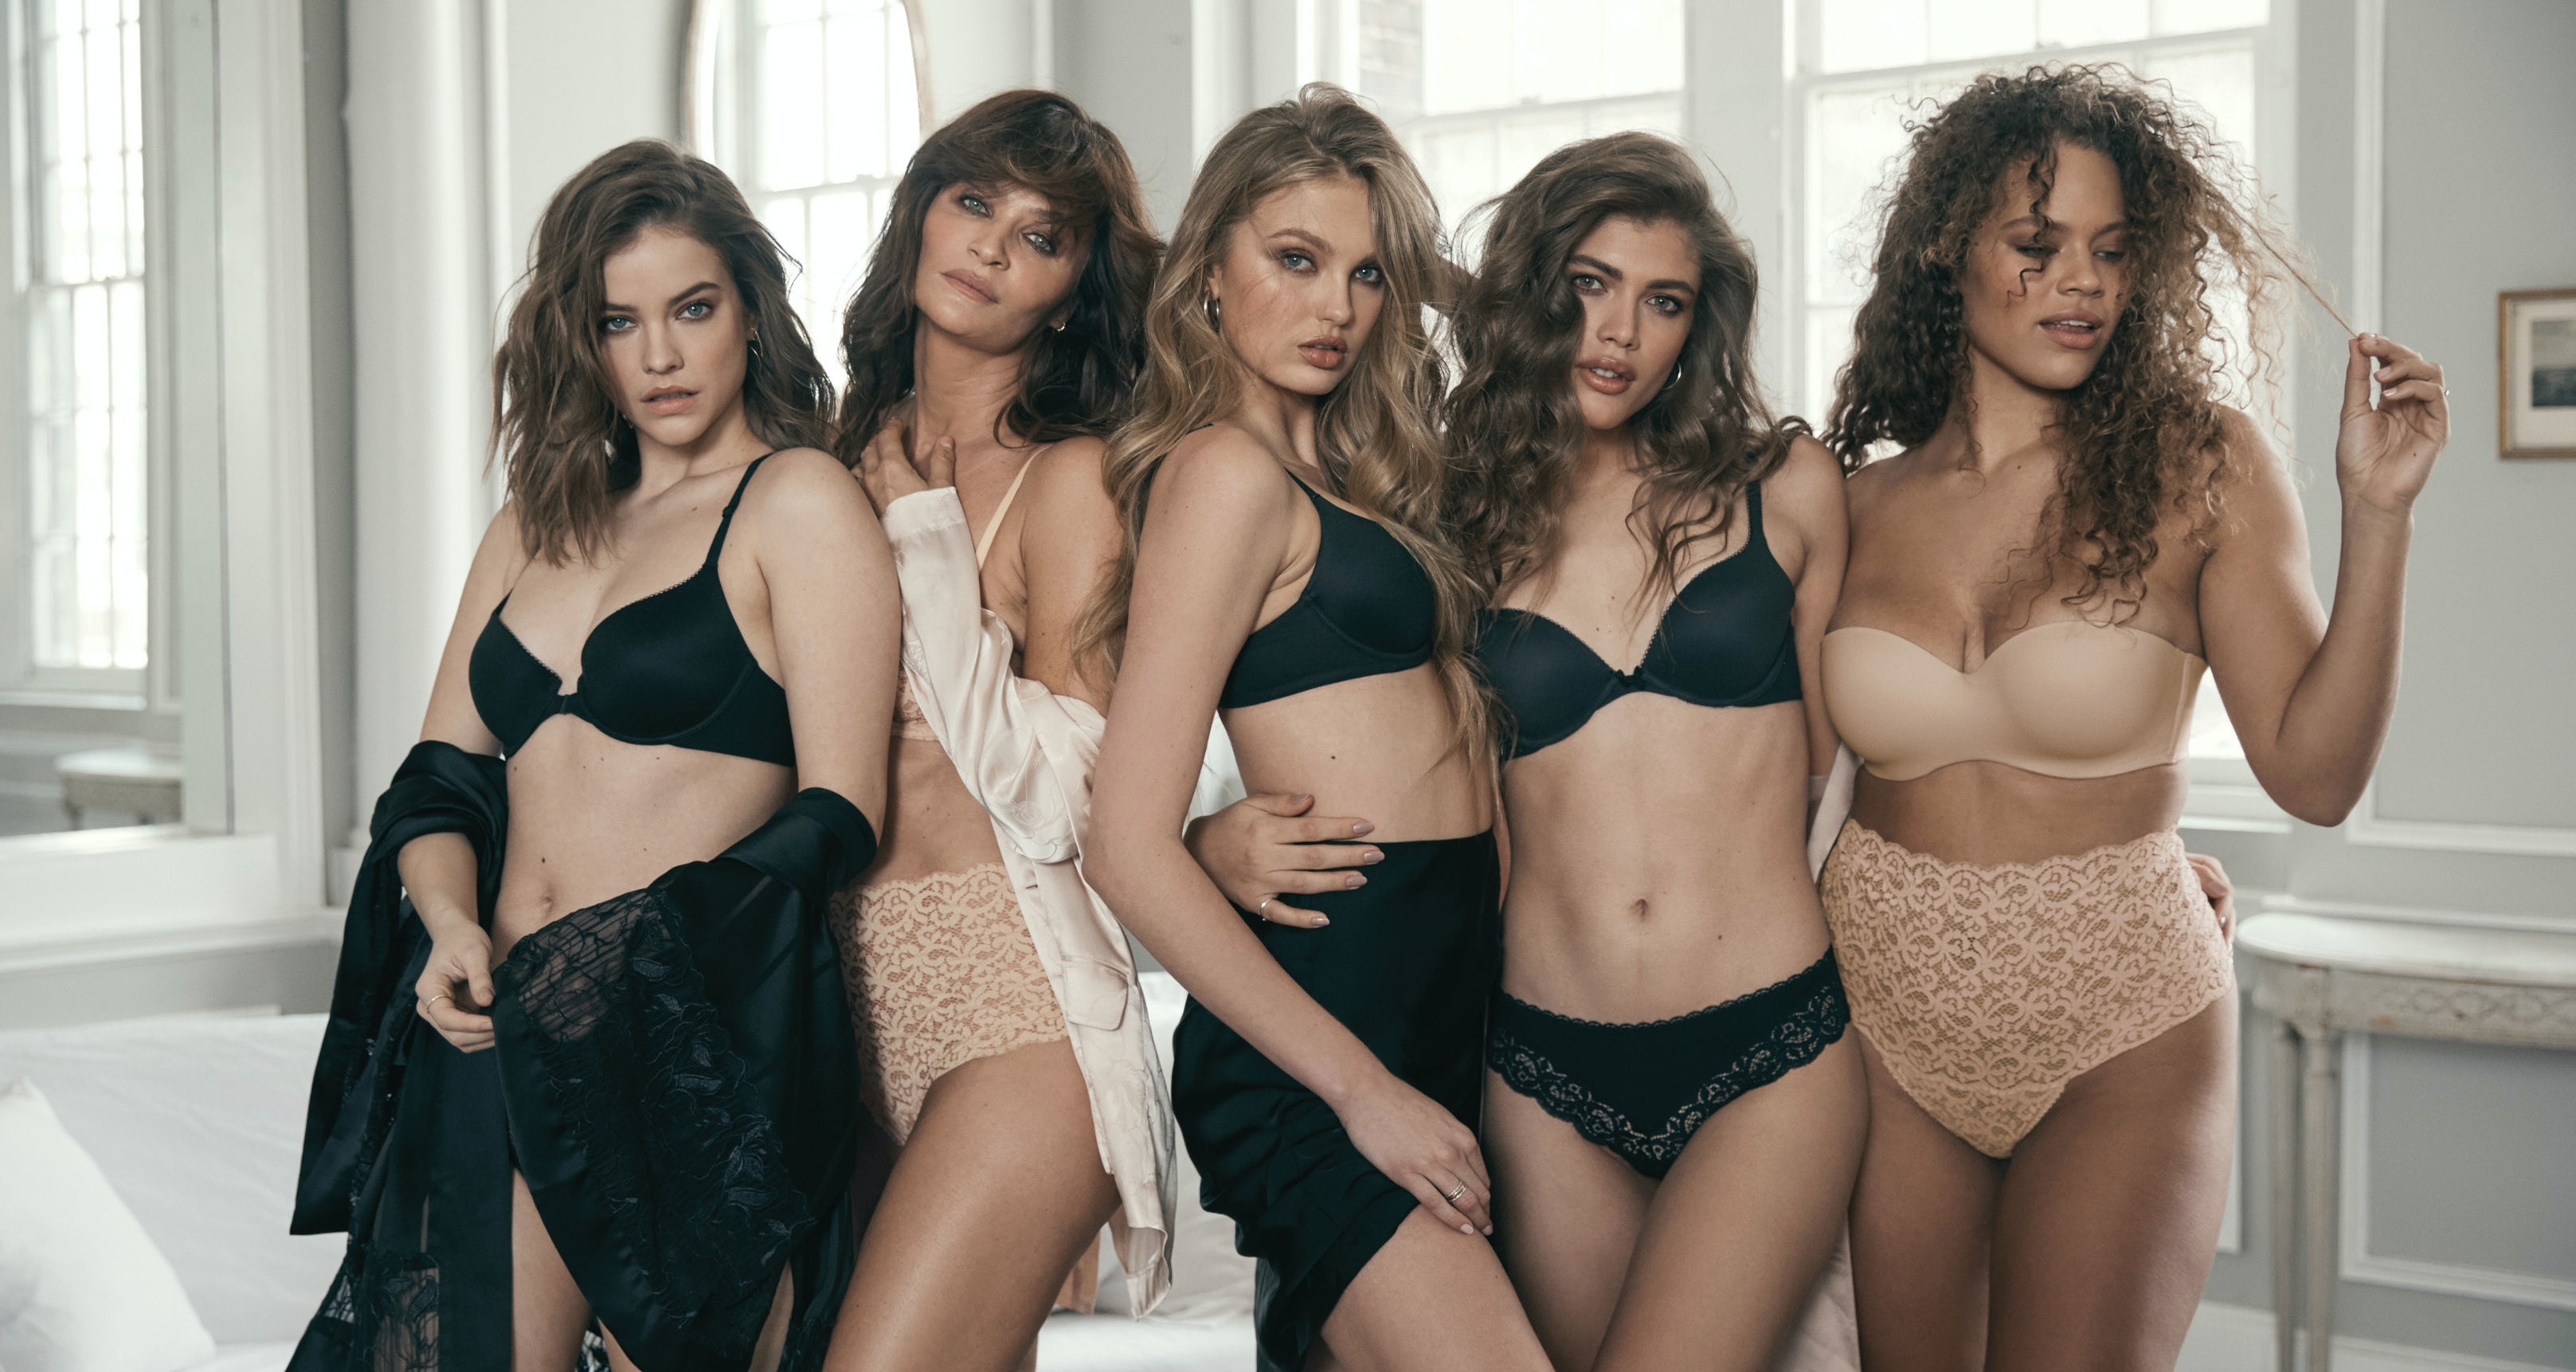 What The Potential End Of The Victoria S Secret Deal Means For Retail M A Intelligence Bof Professional Bof